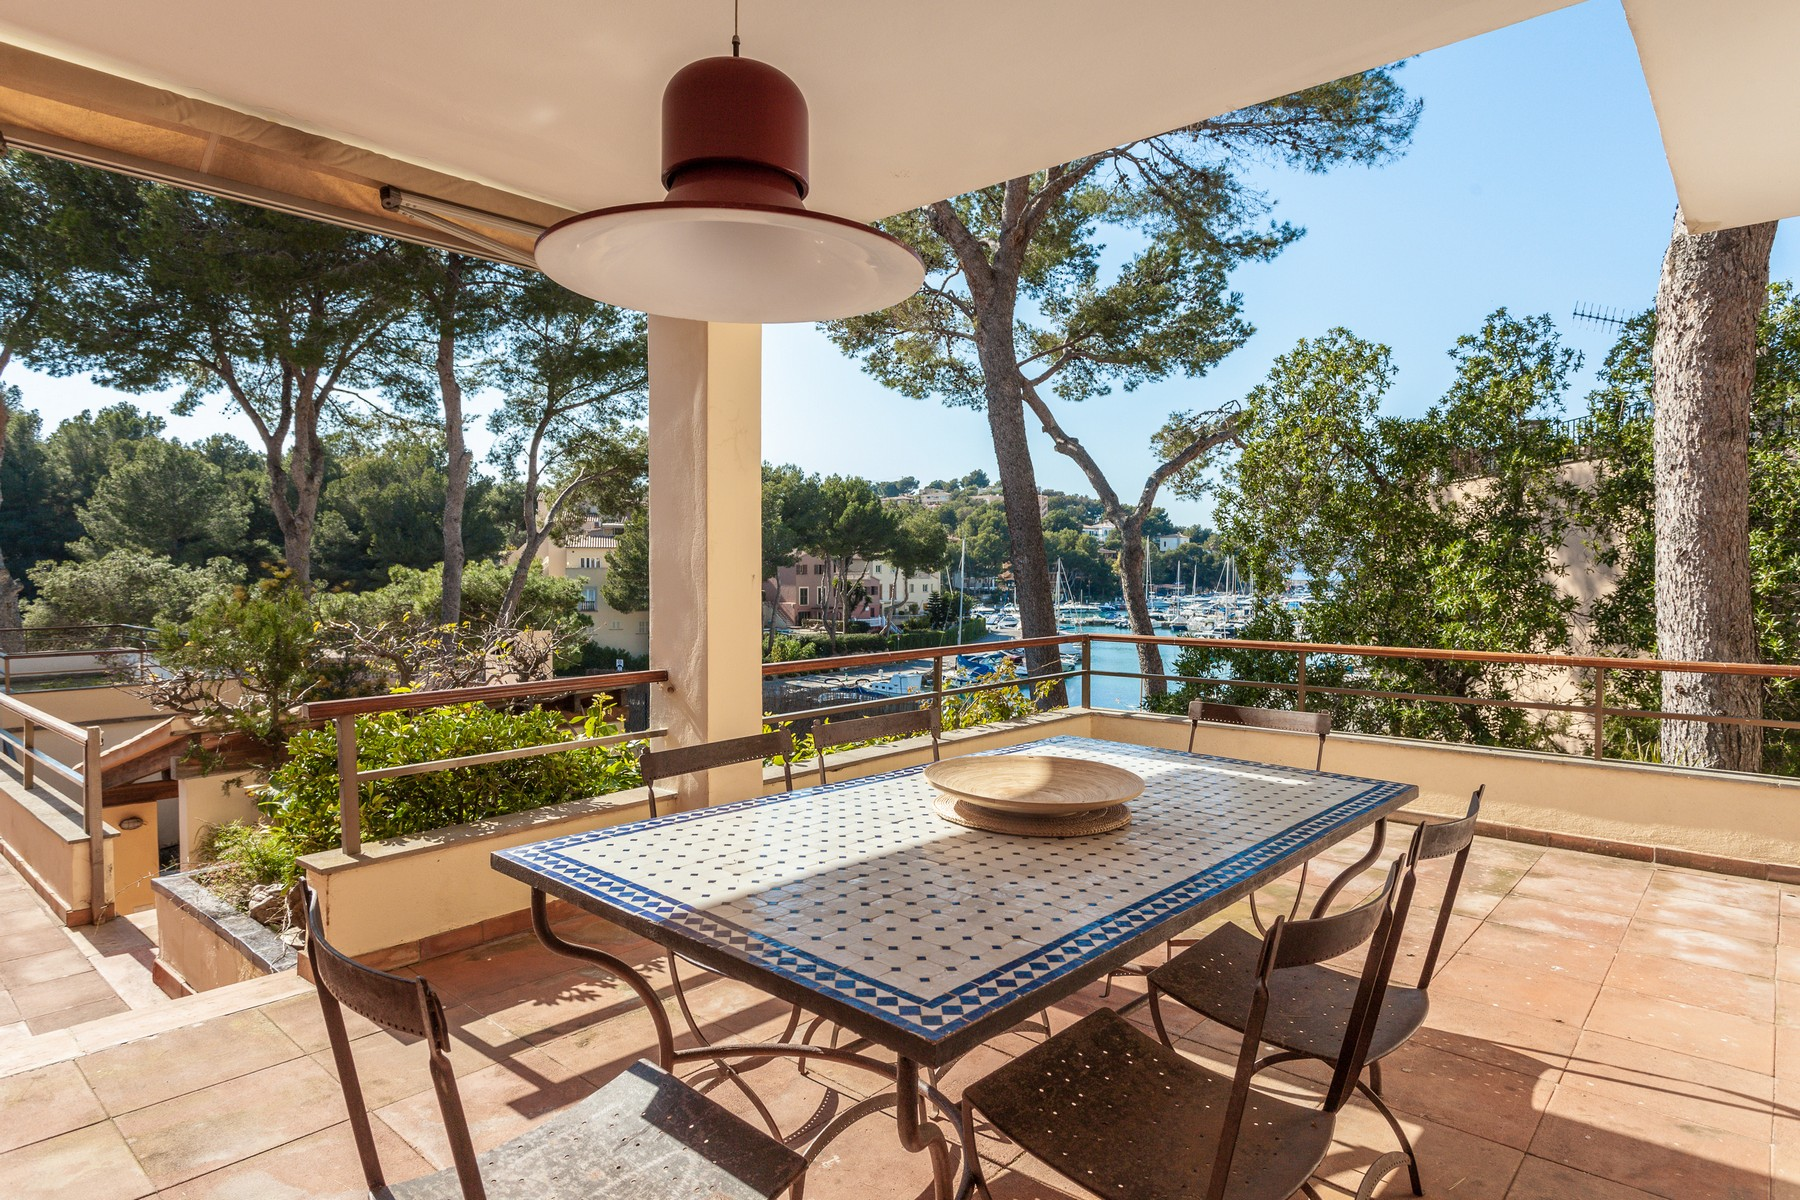 Single Family Home for Sale at Villa with views of the harbour of Santa Ponsa Santa Ponsa, Mallorca 07182 Spain